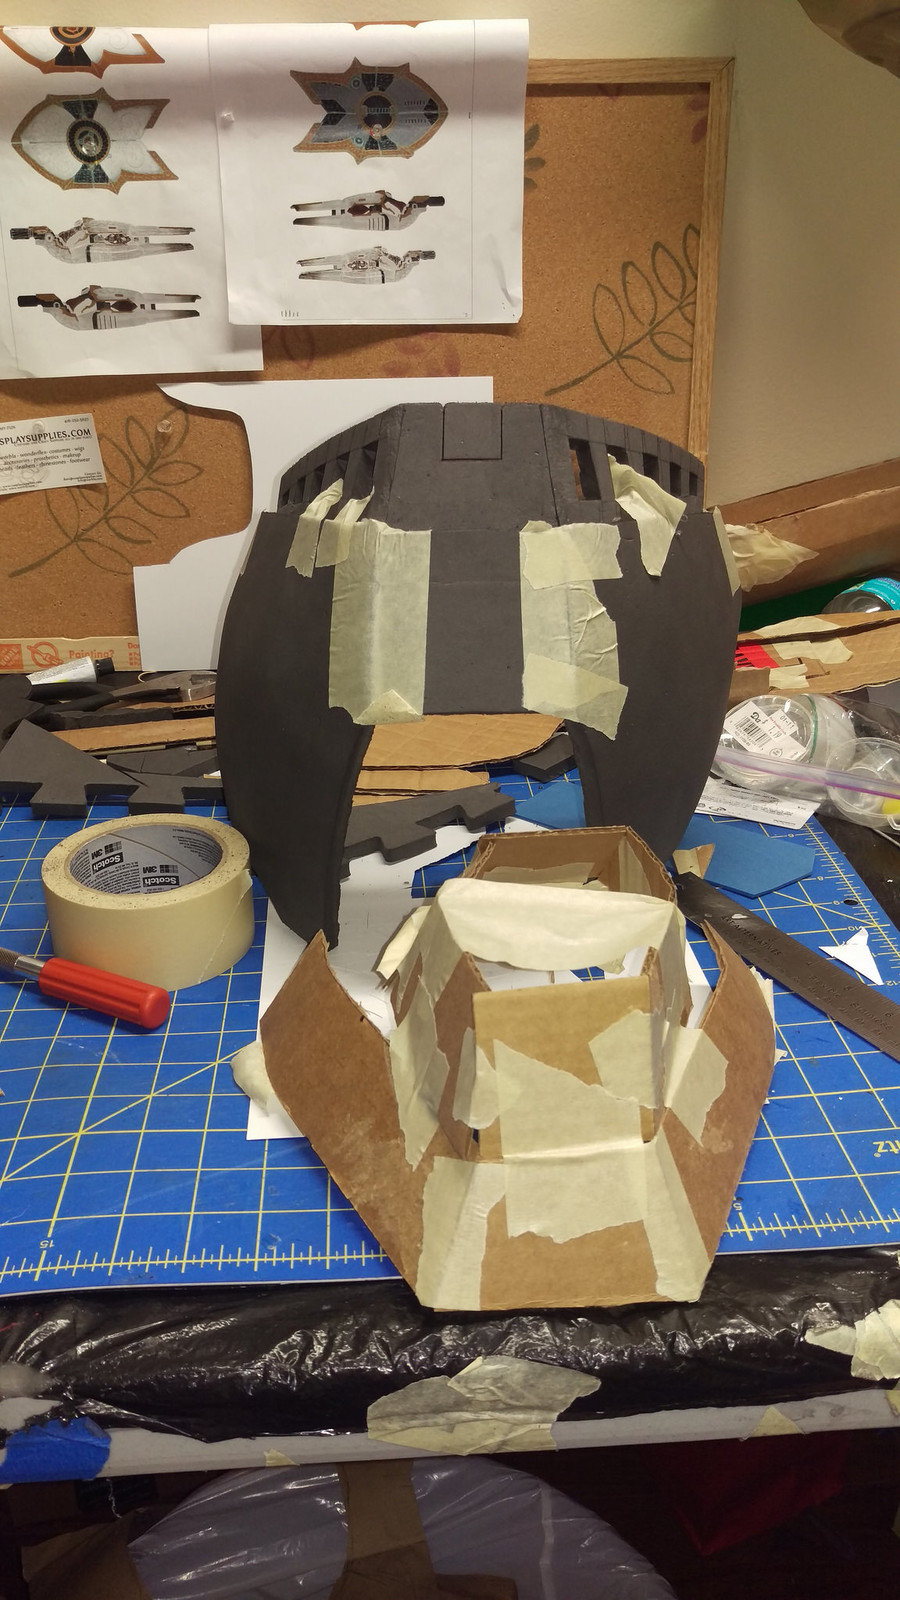 Blocking out the chest piece with cardboard, then foaming it.